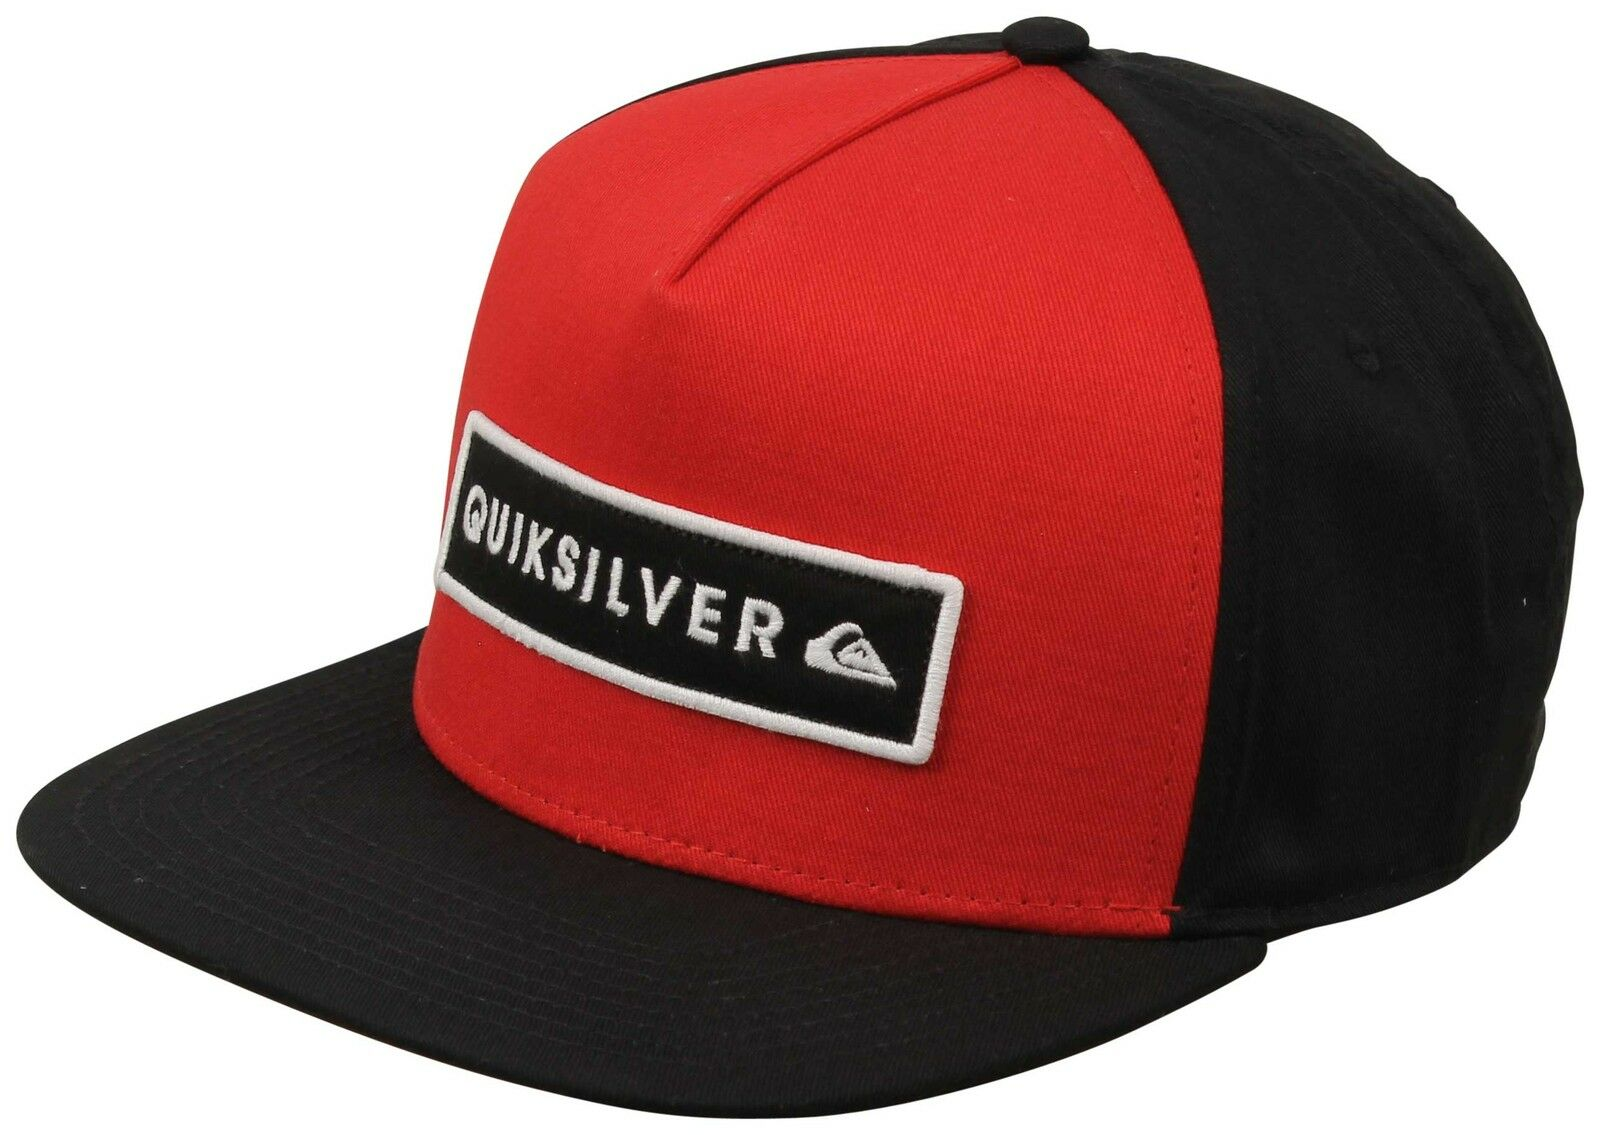 14c46ae32e8 Quiksilver Men s Simplay Hat - Choose Sz color Quick Red One Size